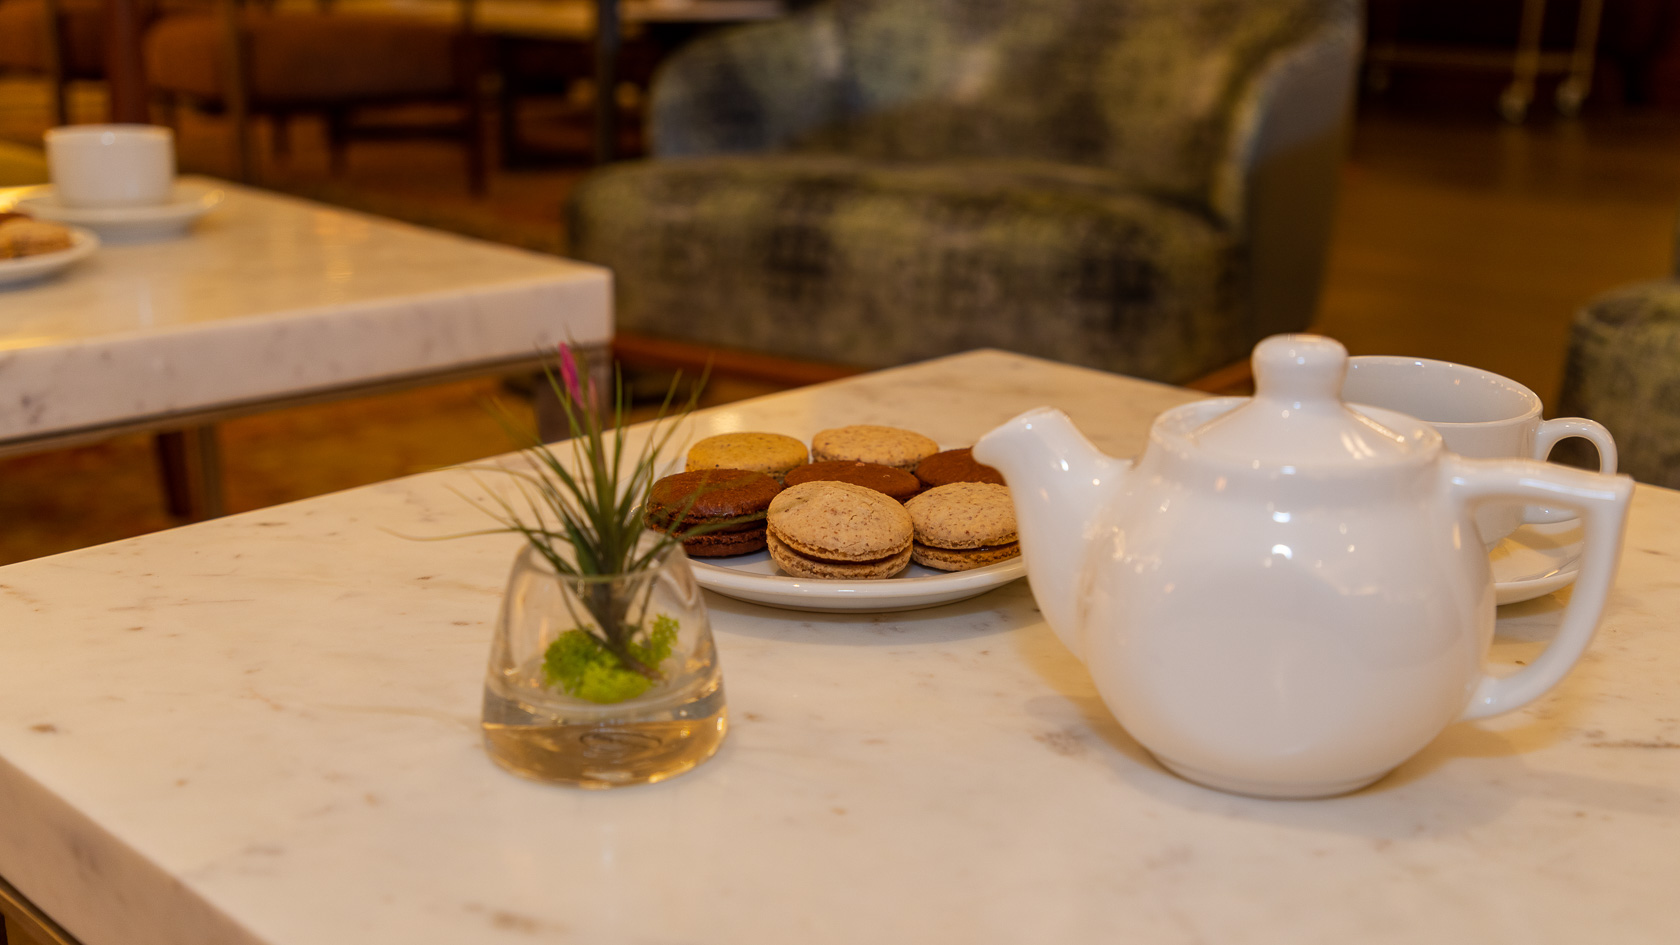 marble tabletop with white tea kettle and cookies